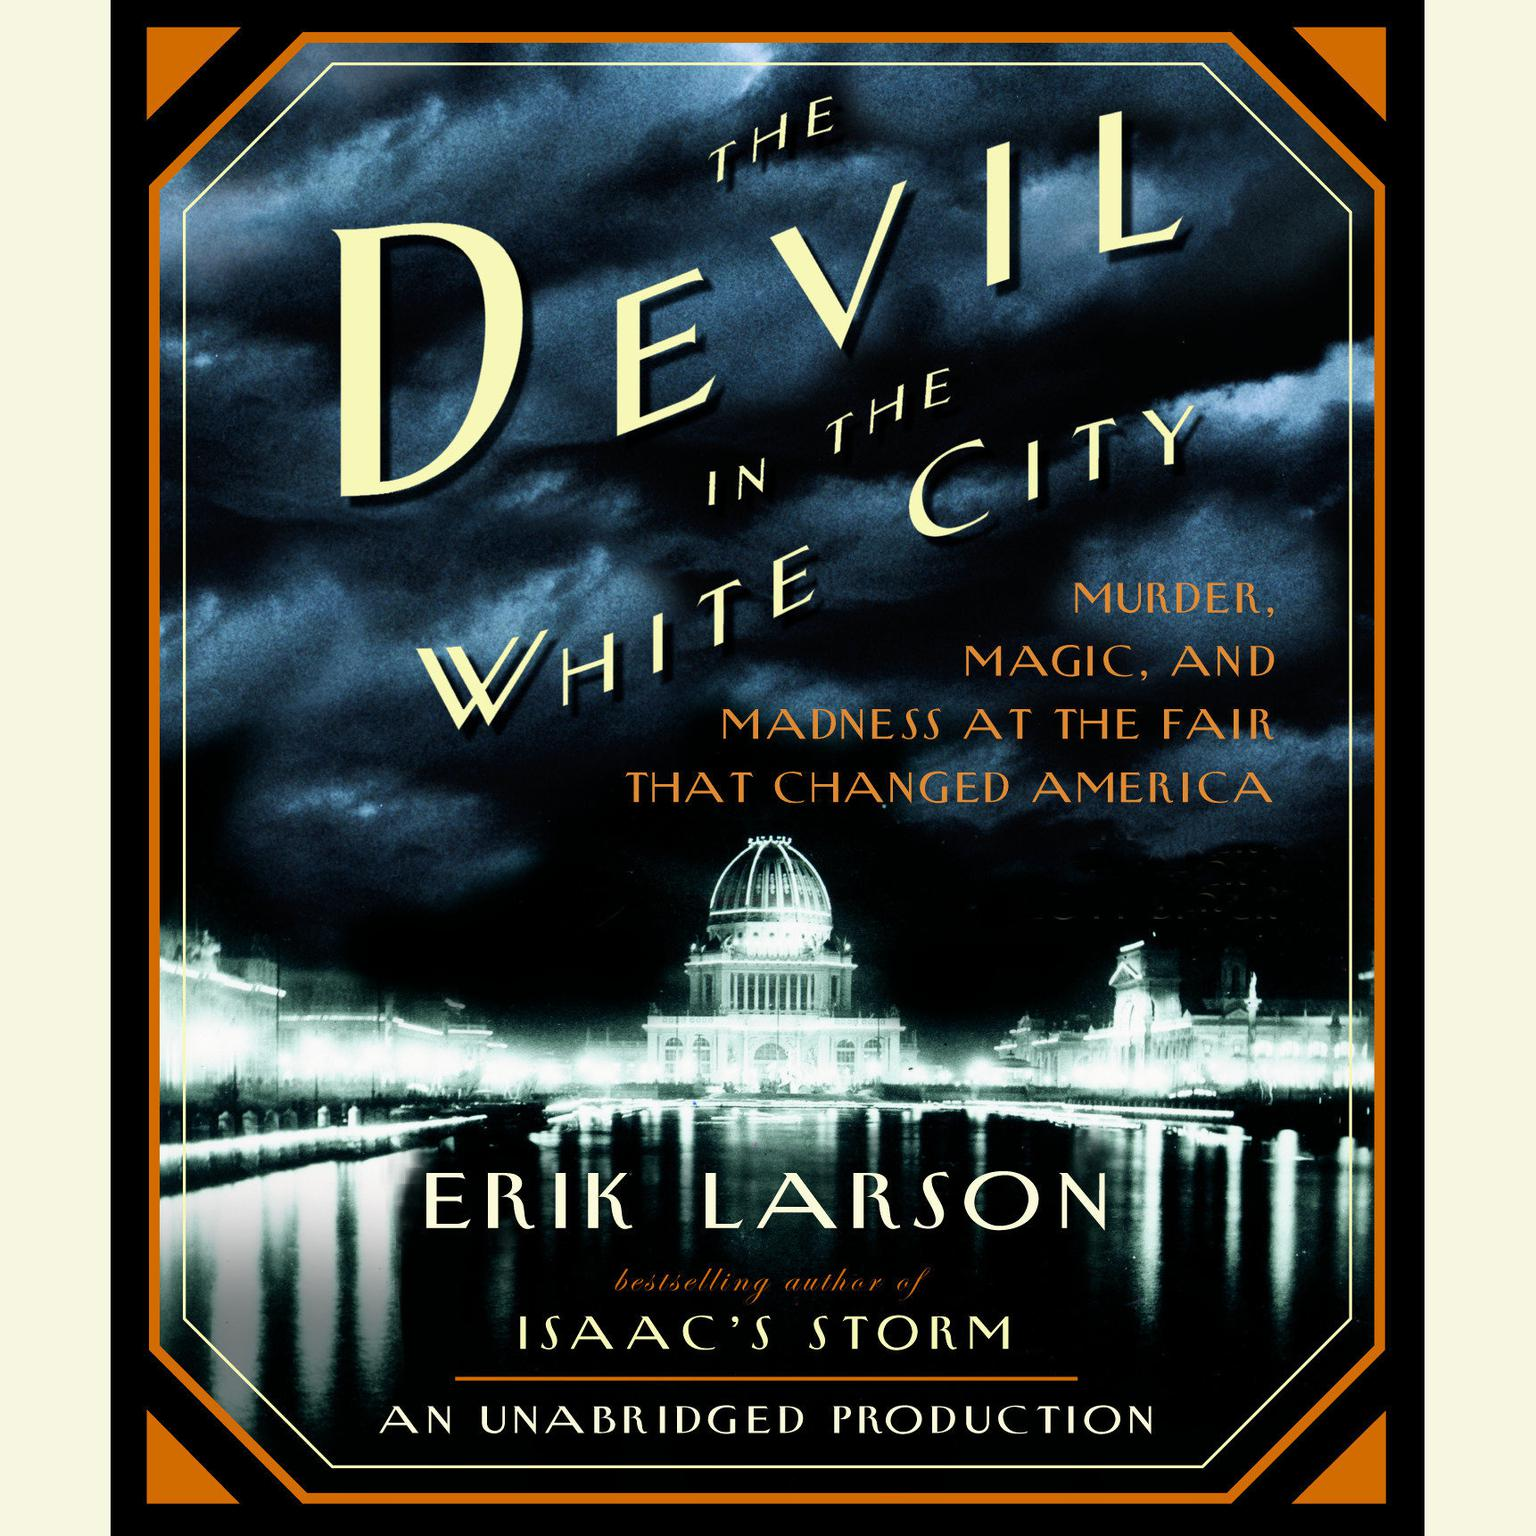 Printable The Devil in the White City: Murder, Magic, and Madness at the Fair That Changed America Audiobook Cover Art